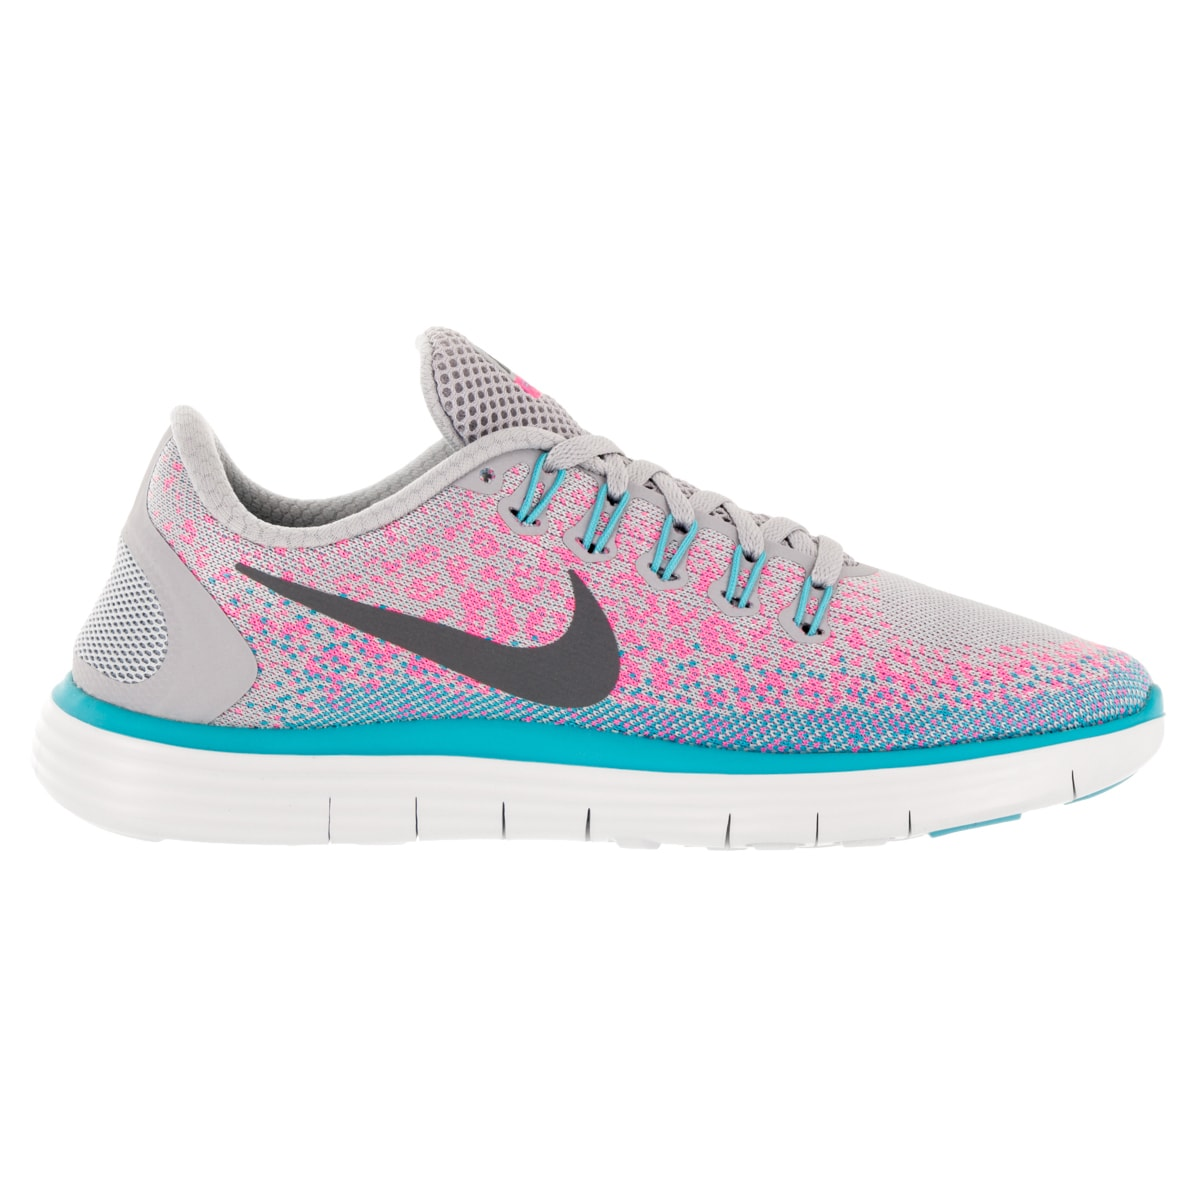 c7cb9ae4c730 Shop Nike Women s Free Distance Wolf Grey Dark Grey Pink Blast Running Shoe  - Free Shipping Today - Overstock - 12329260